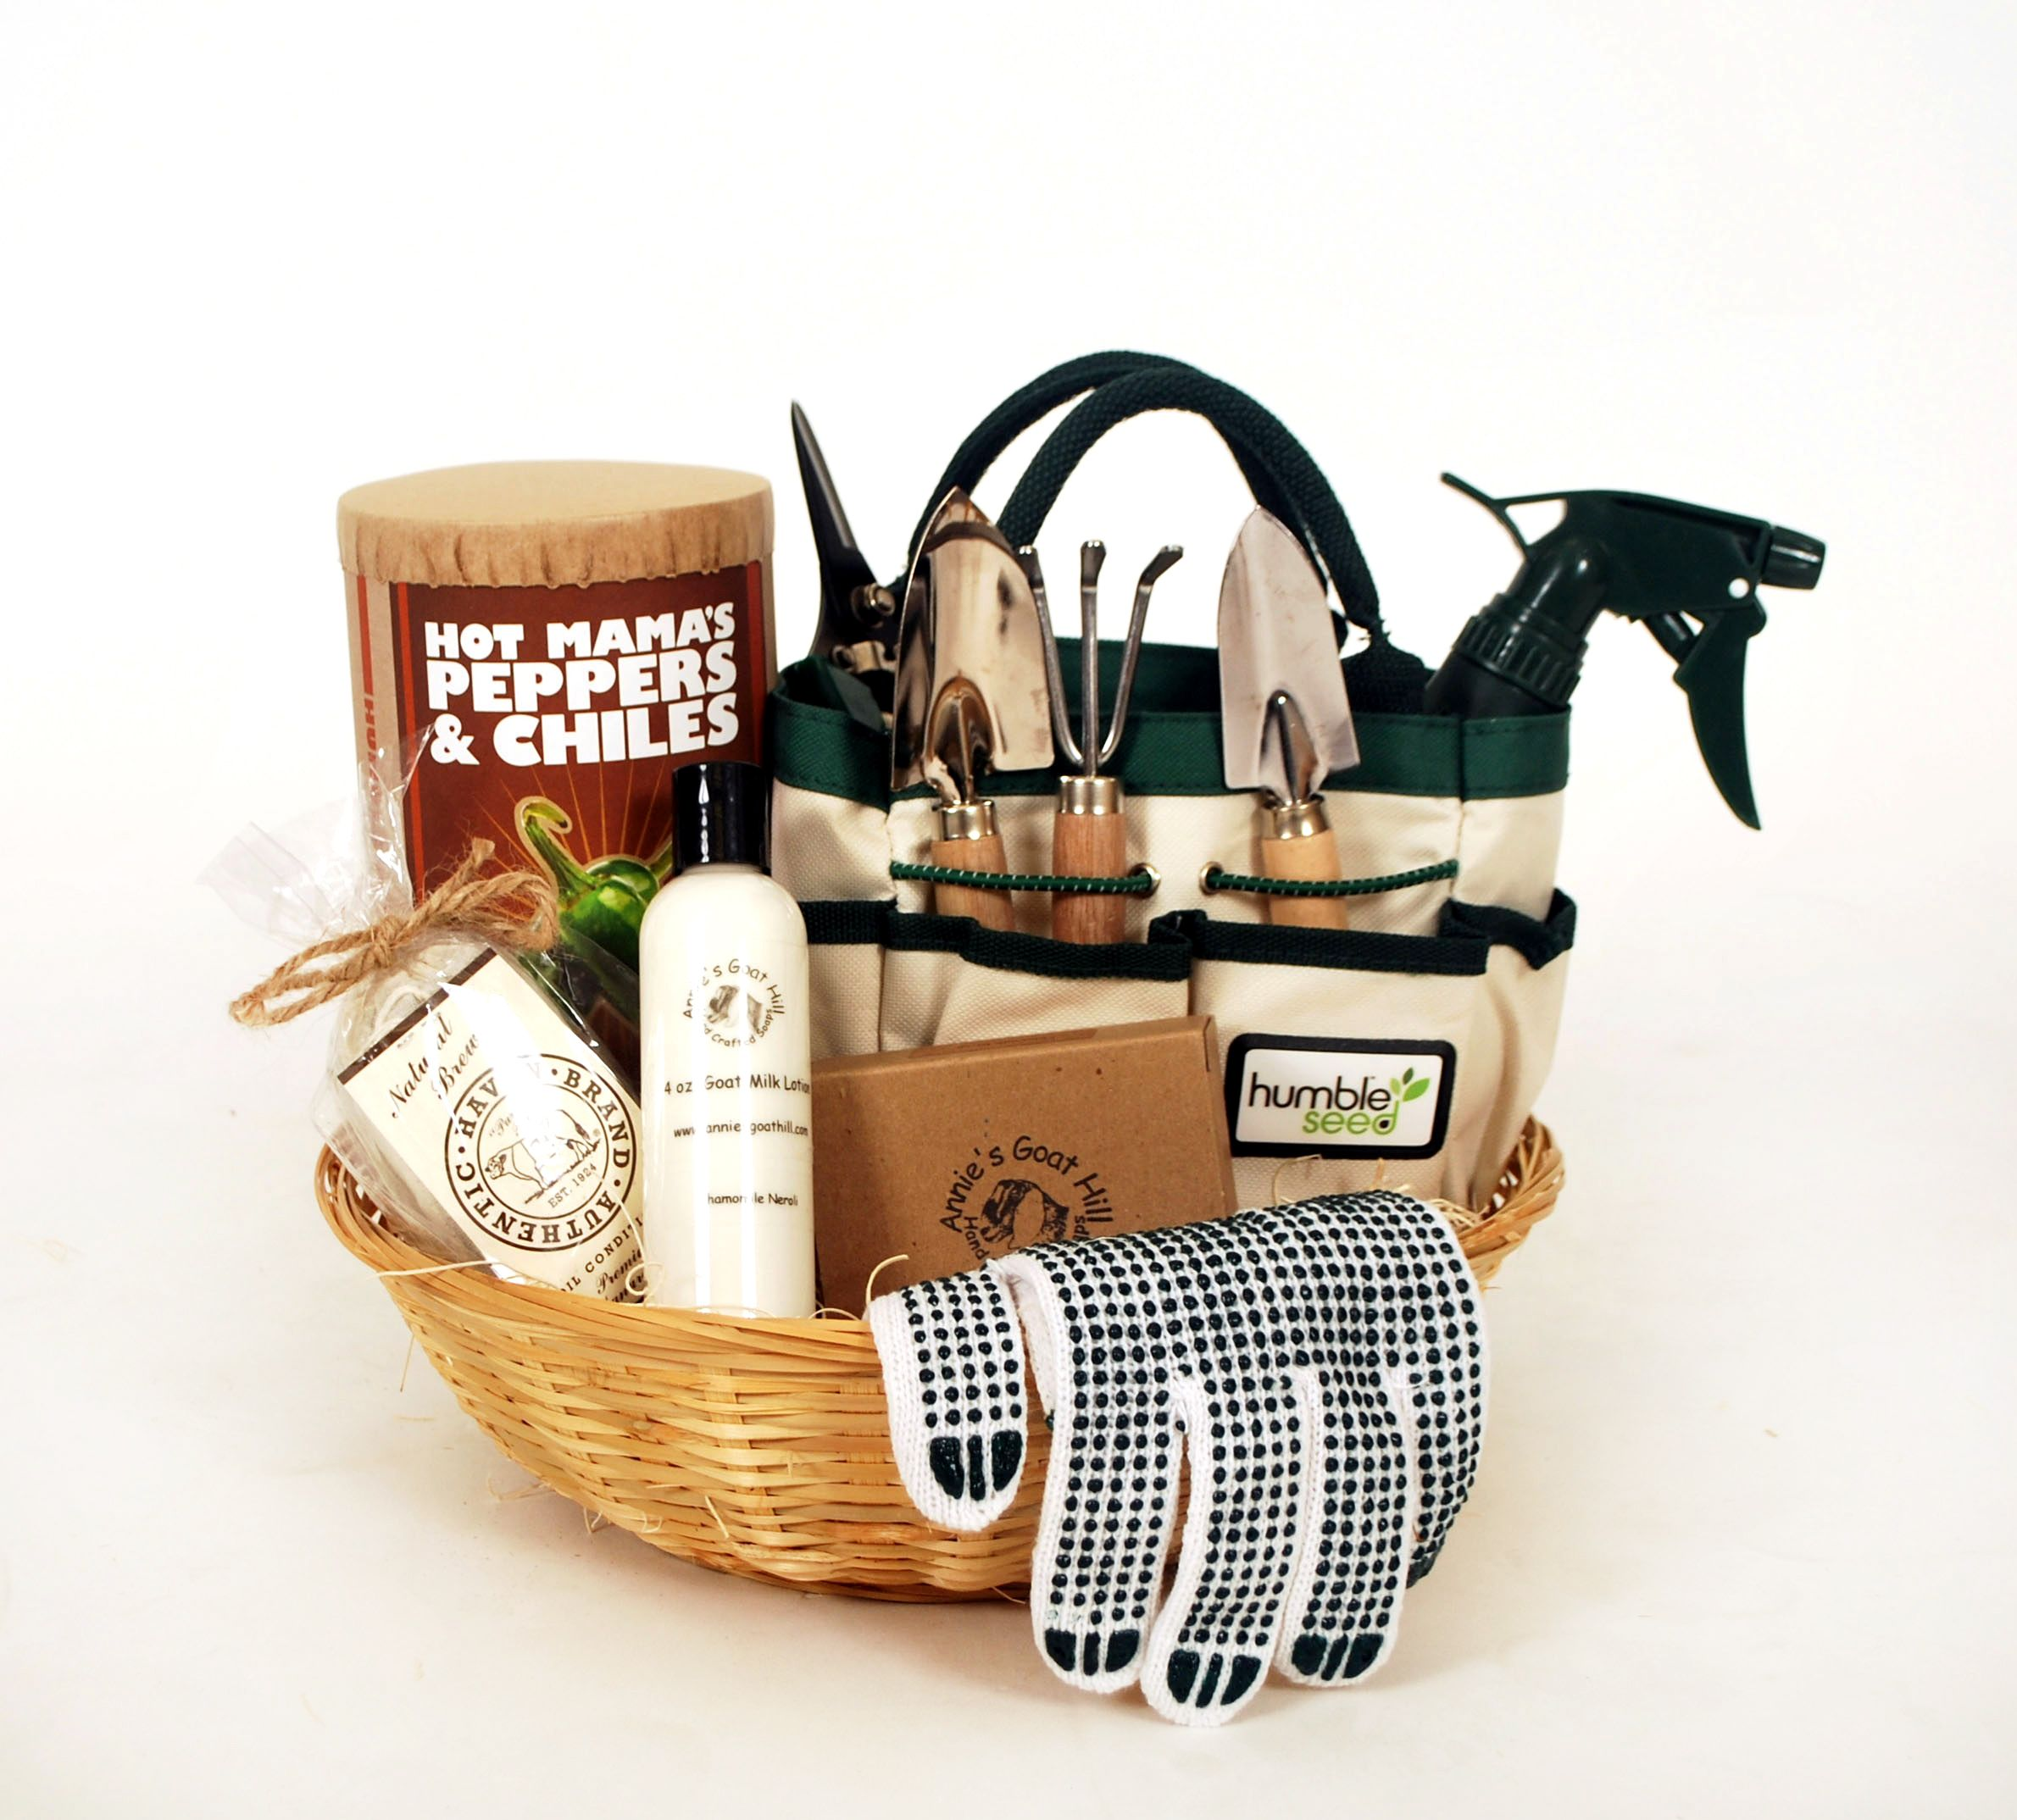 Hot Mama's Peppers and Chiles Gift Basket is perfect for